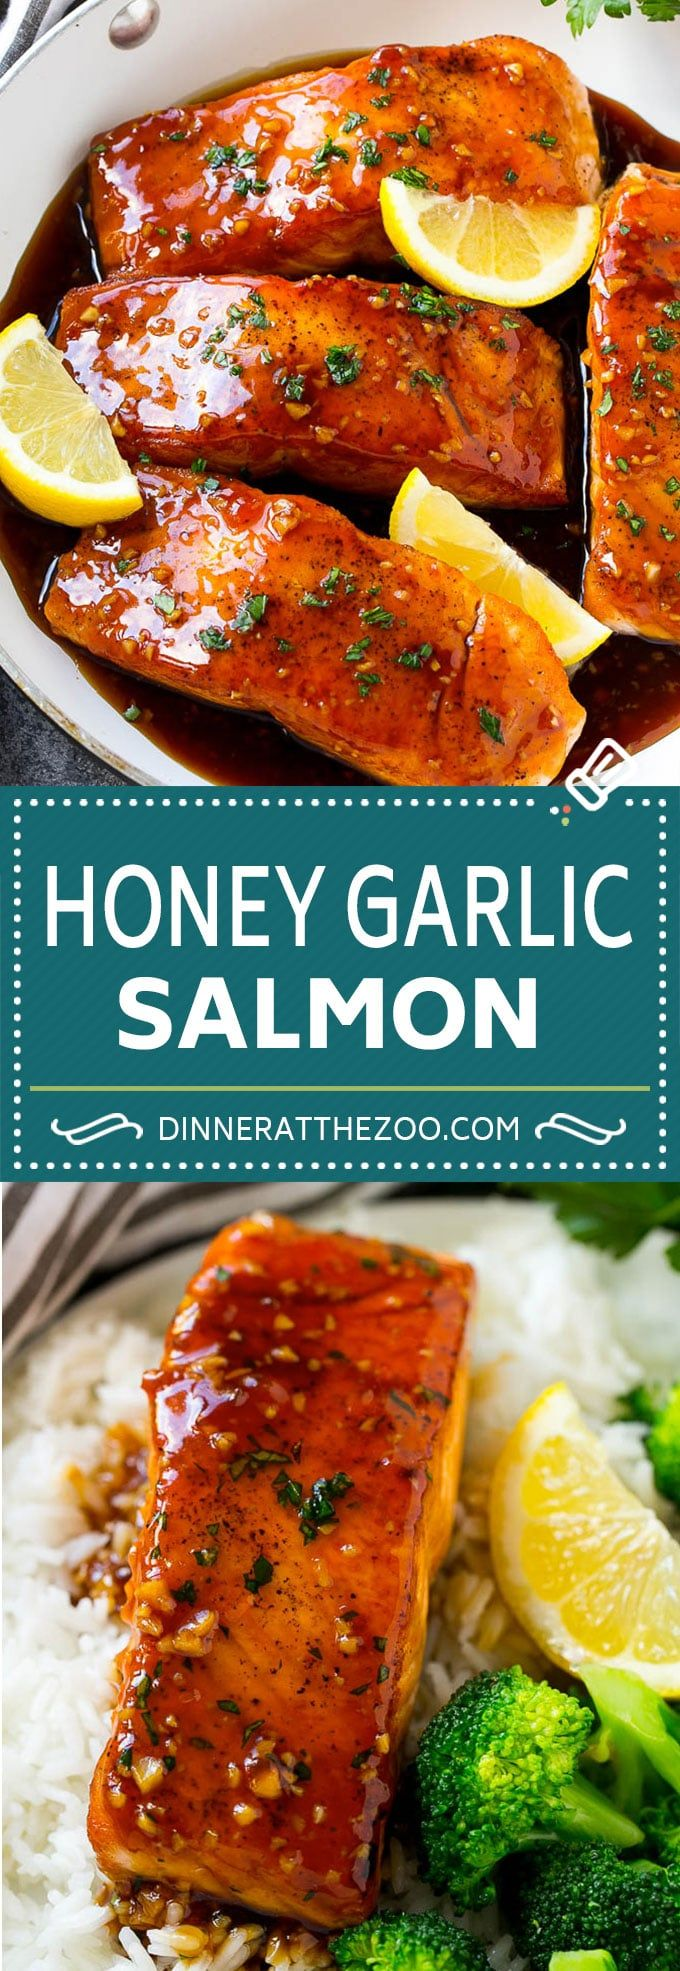 Honey Garlic Salmon Recipe | Asian Salmon Recipe | Healthy Salmon Recipe